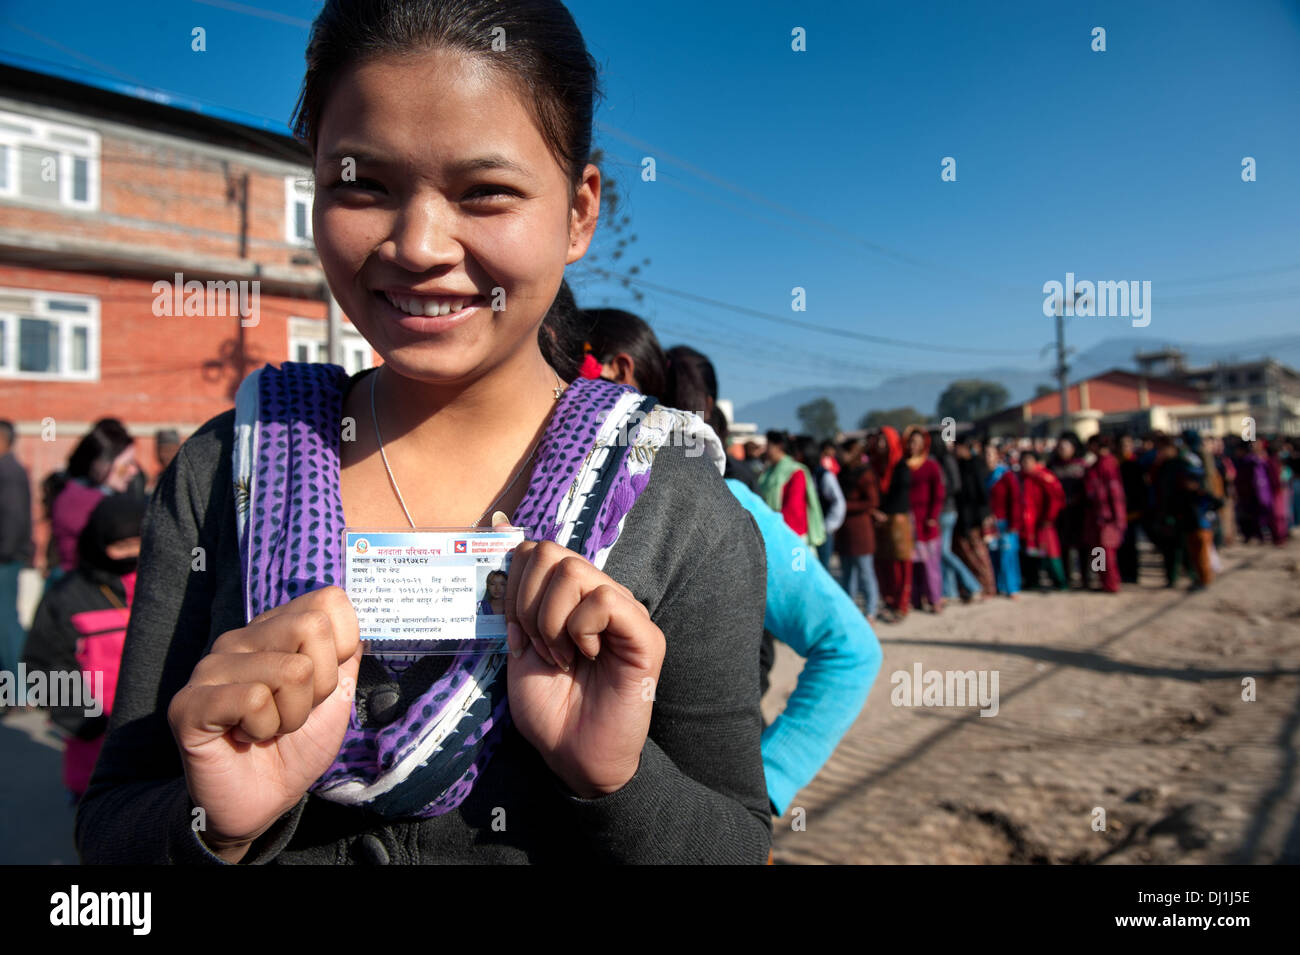 Kathmandu, Nepal. 19th Nov, 2013. Tika Shreshta, an eighteen years old girl, holds her voters card while in queue to cast her vote for the first time.Over 12 million eligible voters flocked to polling stations in a bid to elect Constituent Assembly. Last elections were held in 2008 when the Constituent Assembly failed to write a new constitution. Nepal has been struggling with political uncertainty since 2006 when street demonstrations forced then King Gyanendra to give up his authoritarian rule. Credit:  ZUMA Press, Inc./Alamy Live News - Stock Image